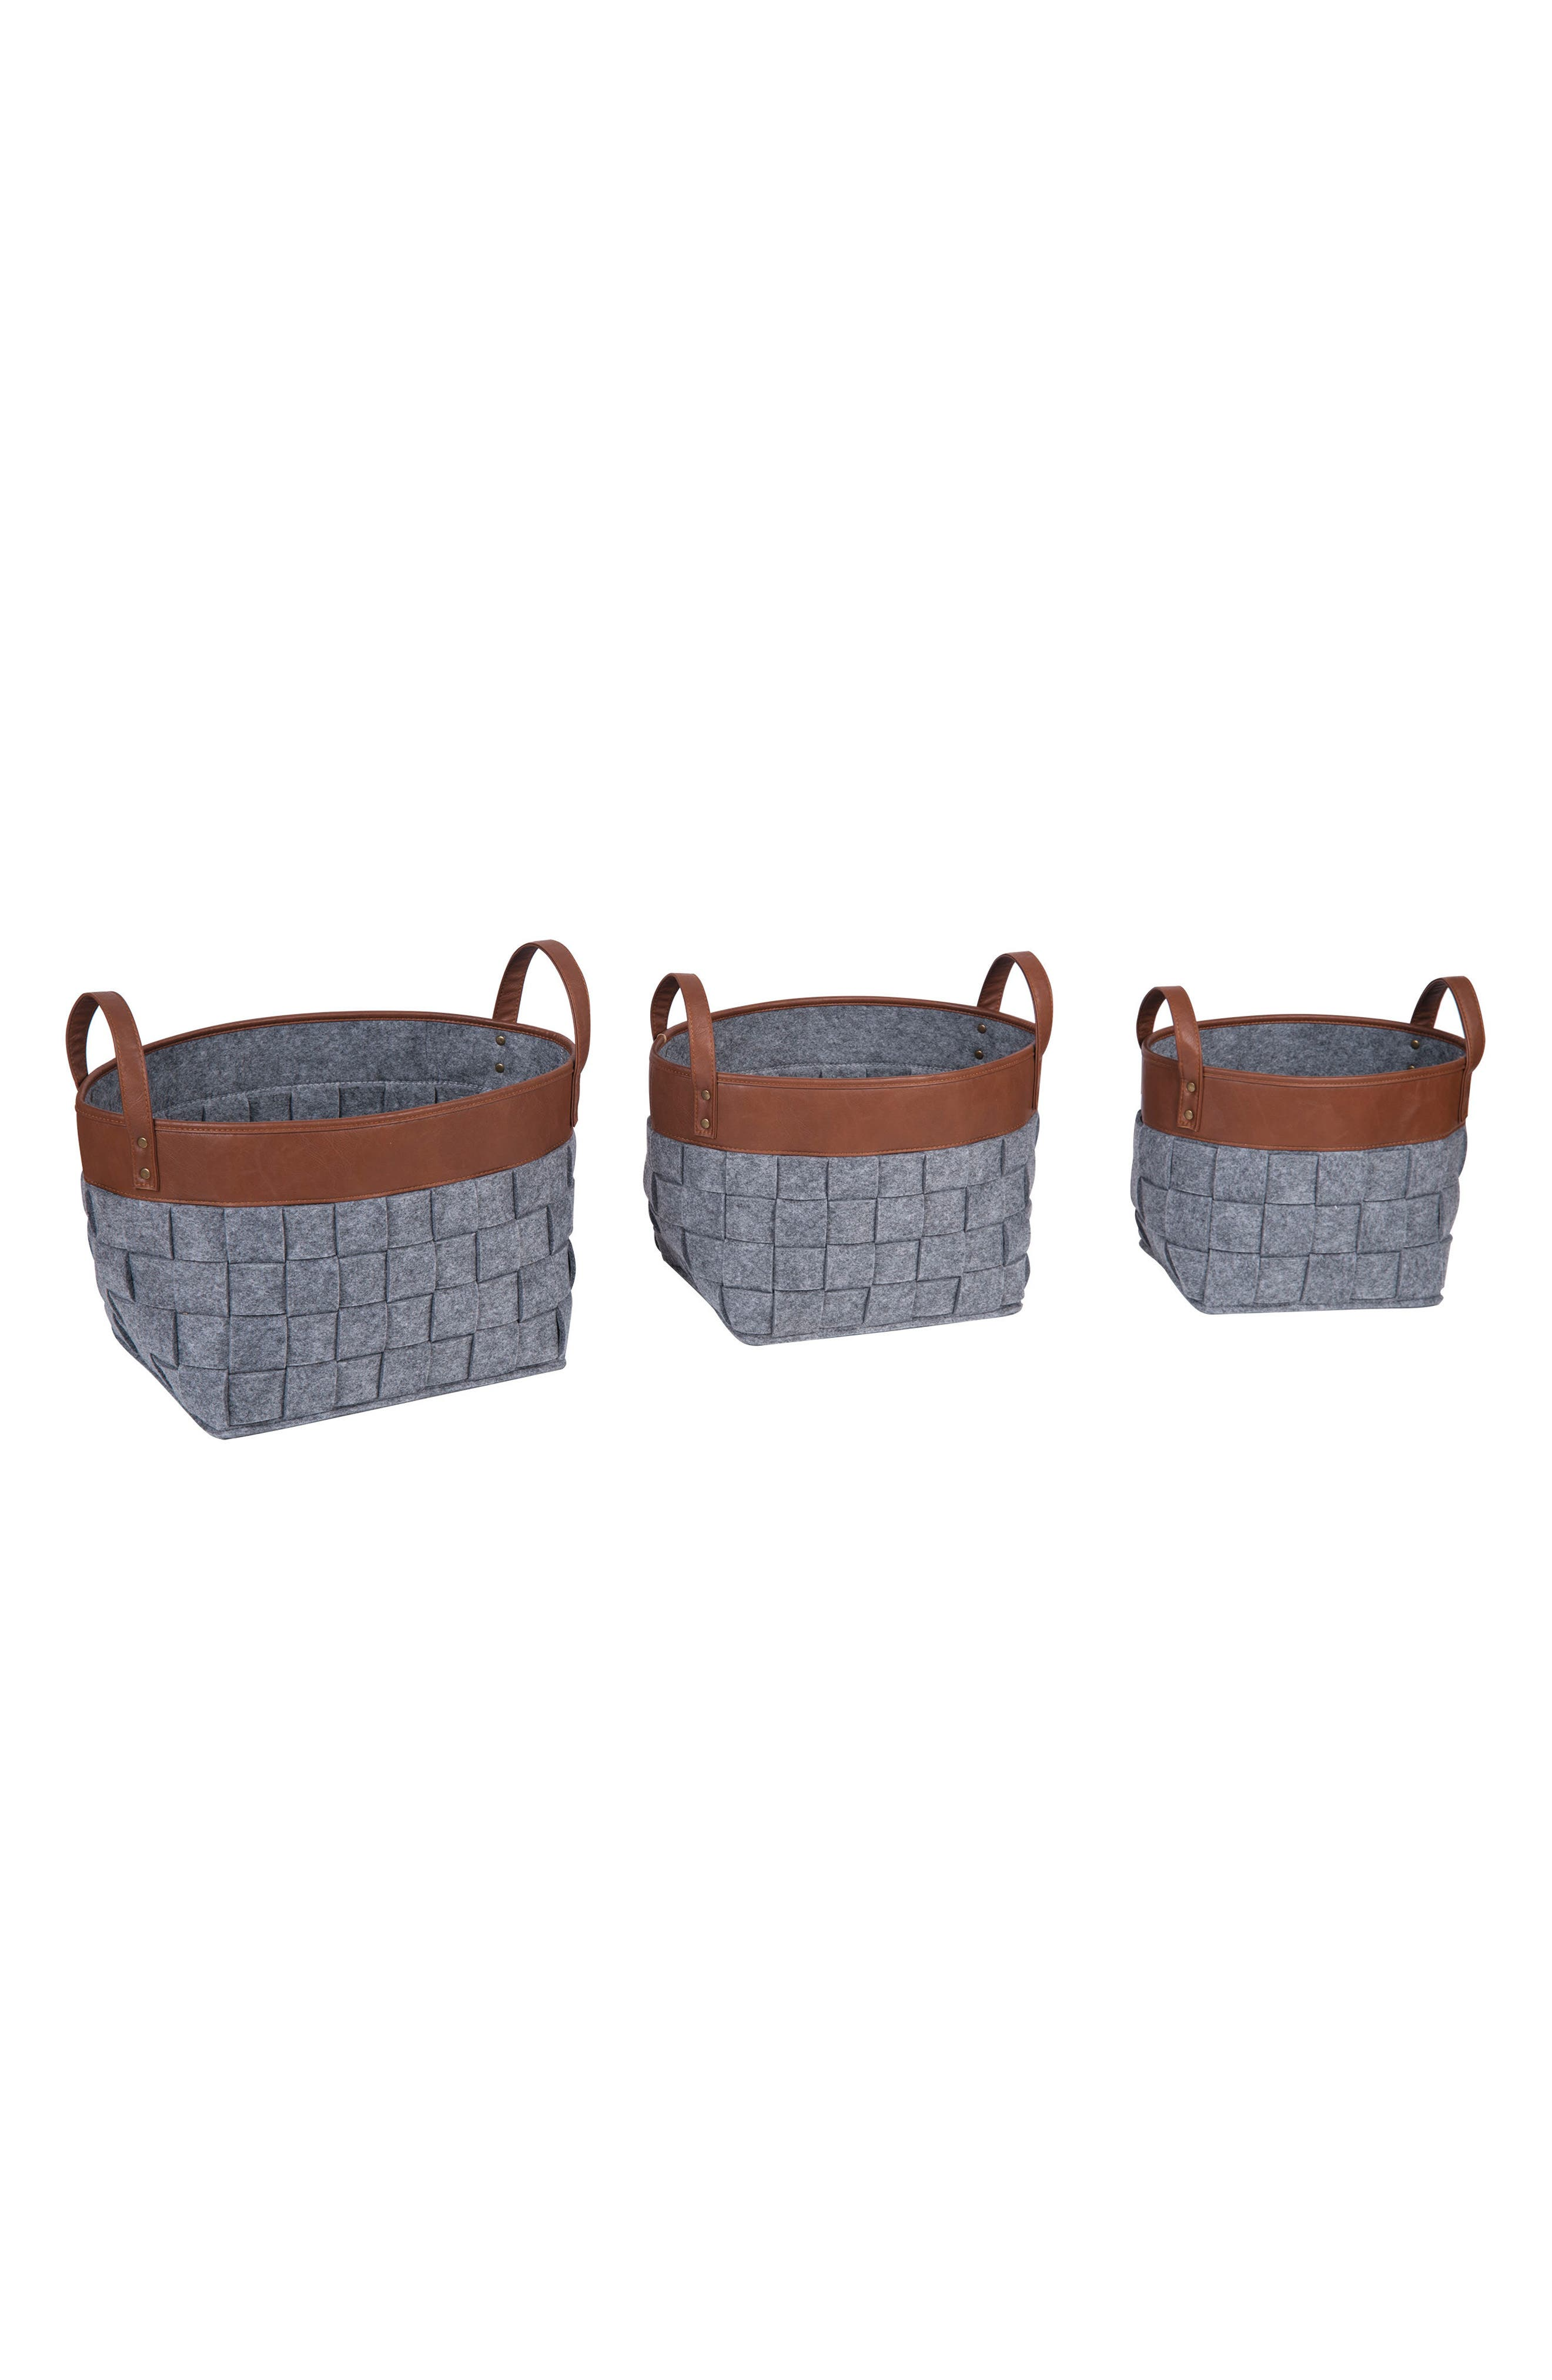 Foreside Set of 3 Woven Nesting Baskets